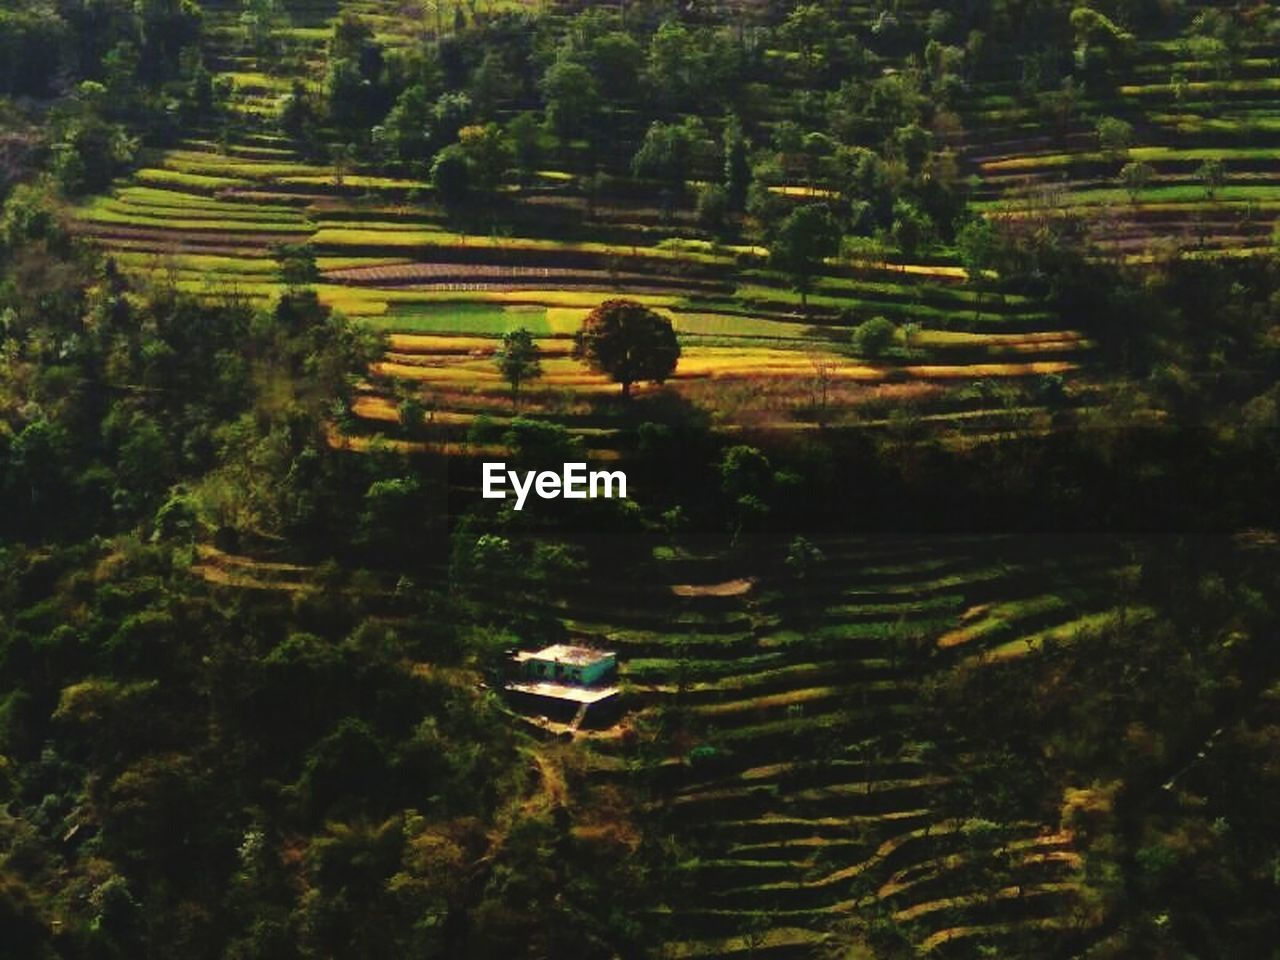 agriculture, tree, tranquil scene, tranquility, growth, nature, landscape, scenics, outdoors, high angle view, beauty in nature, rice paddy, day, field, no people, terraced field, maze, rural scene, water